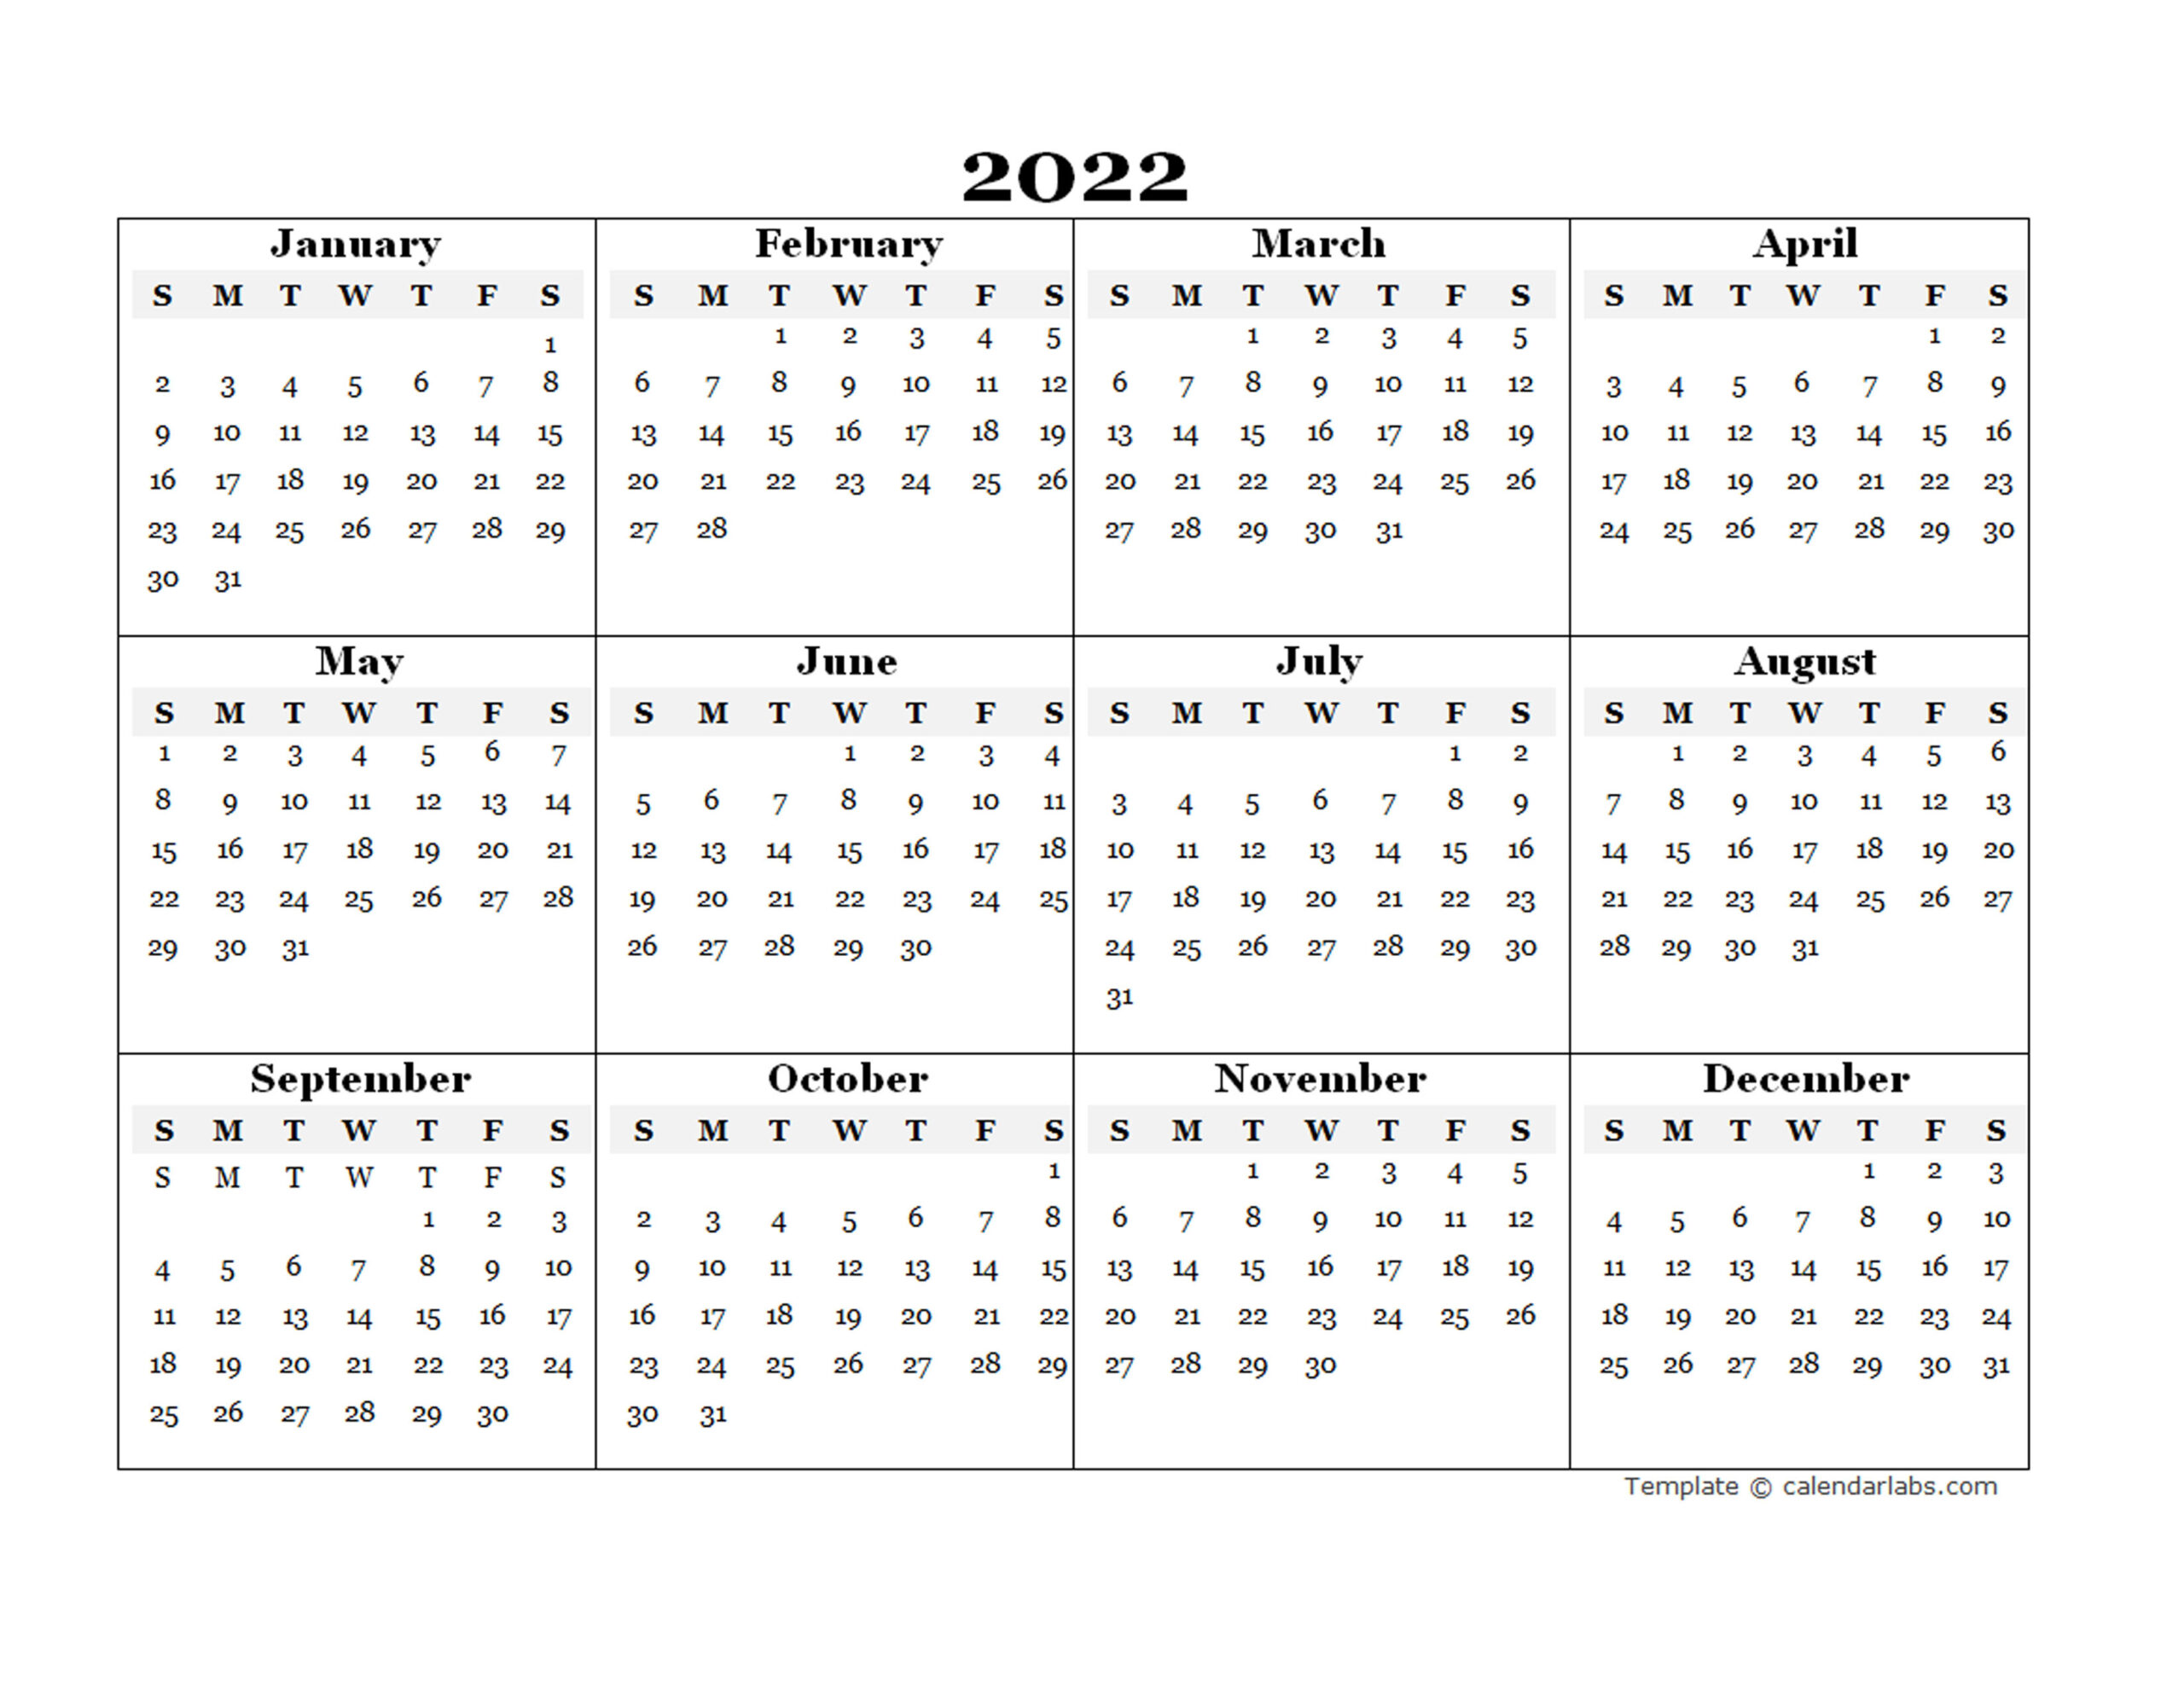 2022 Blank Yearly Calendar Template - Free Printable Templates with 2022 Day To Day Calendars For Men